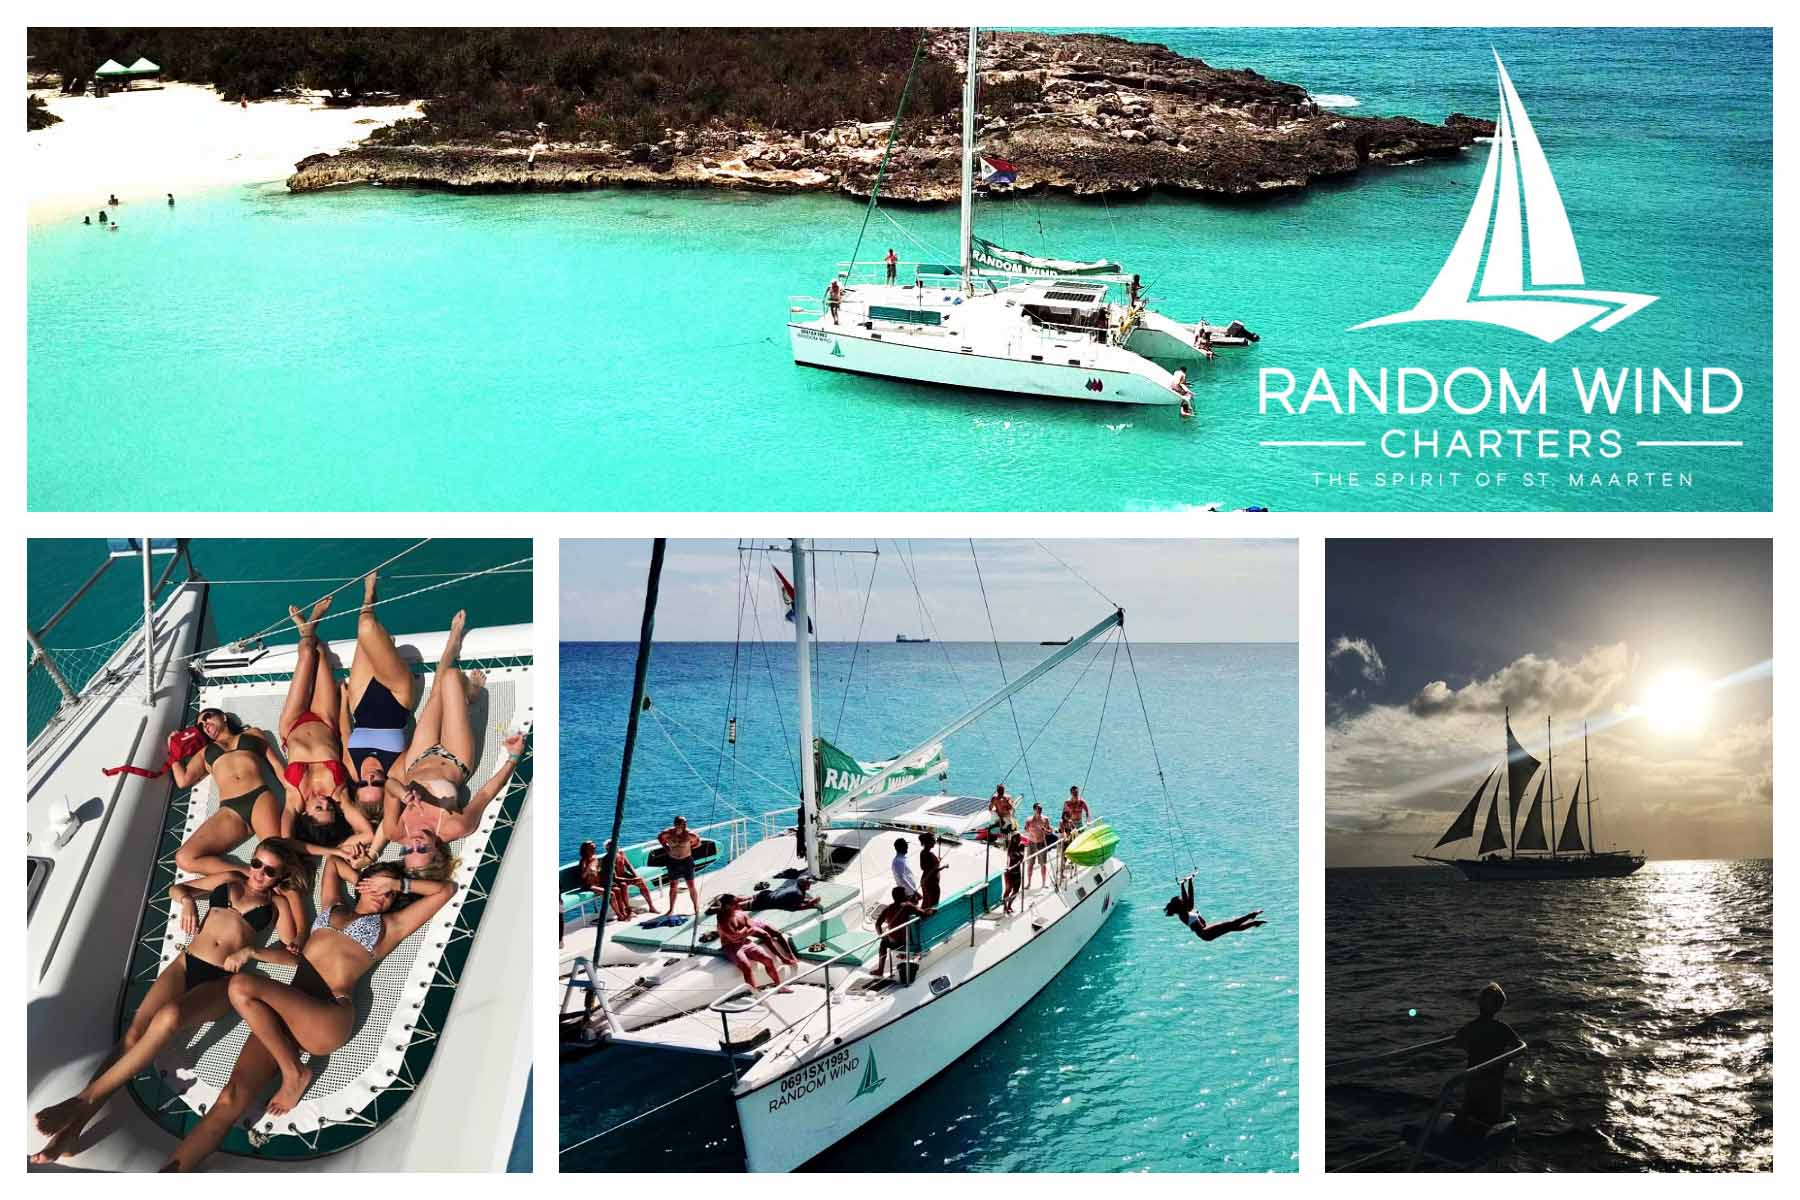 Random Wind - Luxury Catamaran charter - Family friendly, high quality food and top shelf drinks! We Are SXM - Watersports